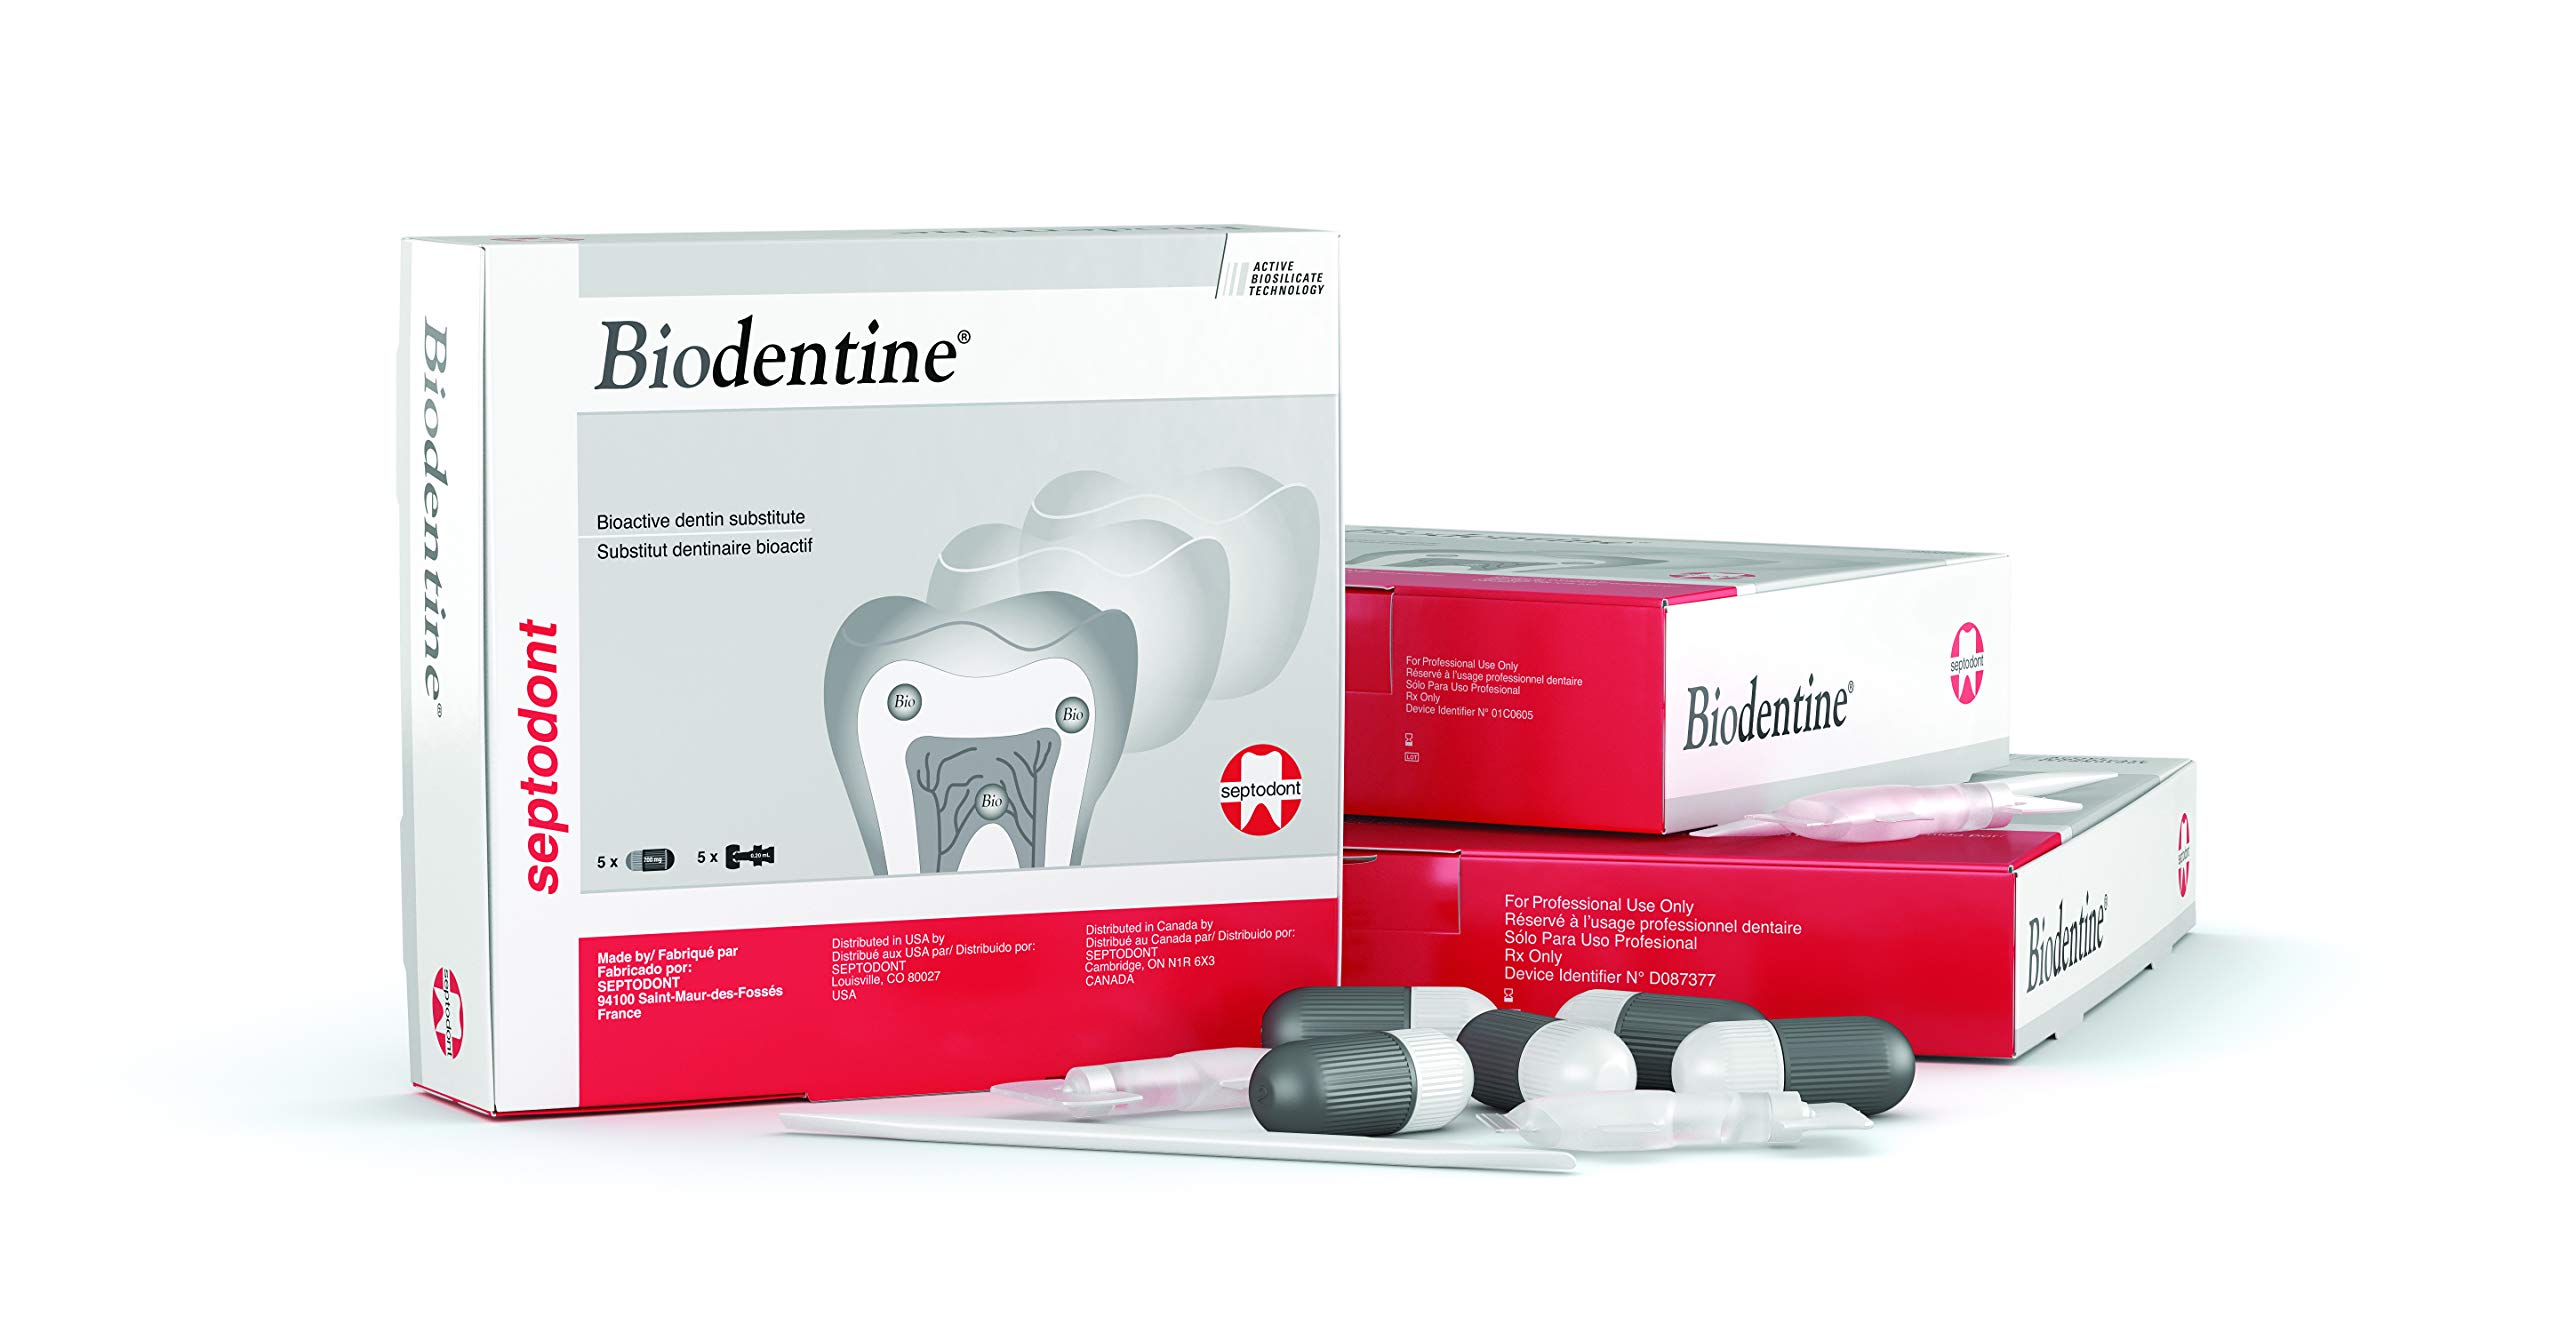 Septodont Biodentine Replacement Material, 15-700mg Capsules, 15-.18mL Unit Does, 1/bx 01-C0600 by Septodont